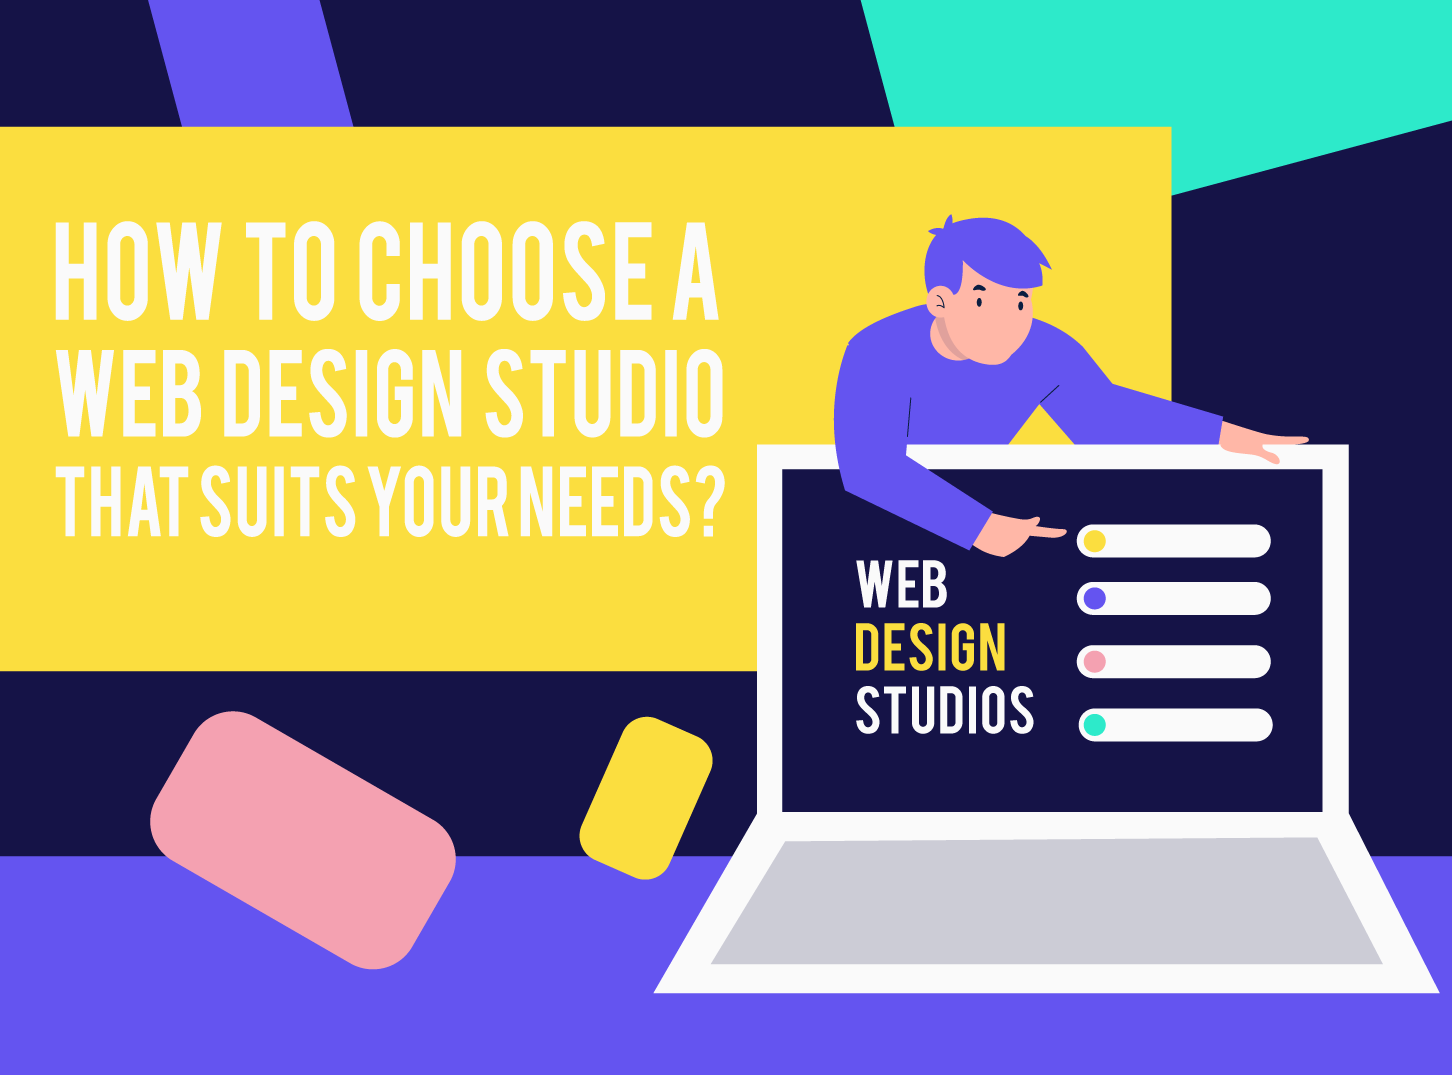 Choose a Web Design Studio That Will Elevate Your Business - Inkyy Web Design Studio Blog